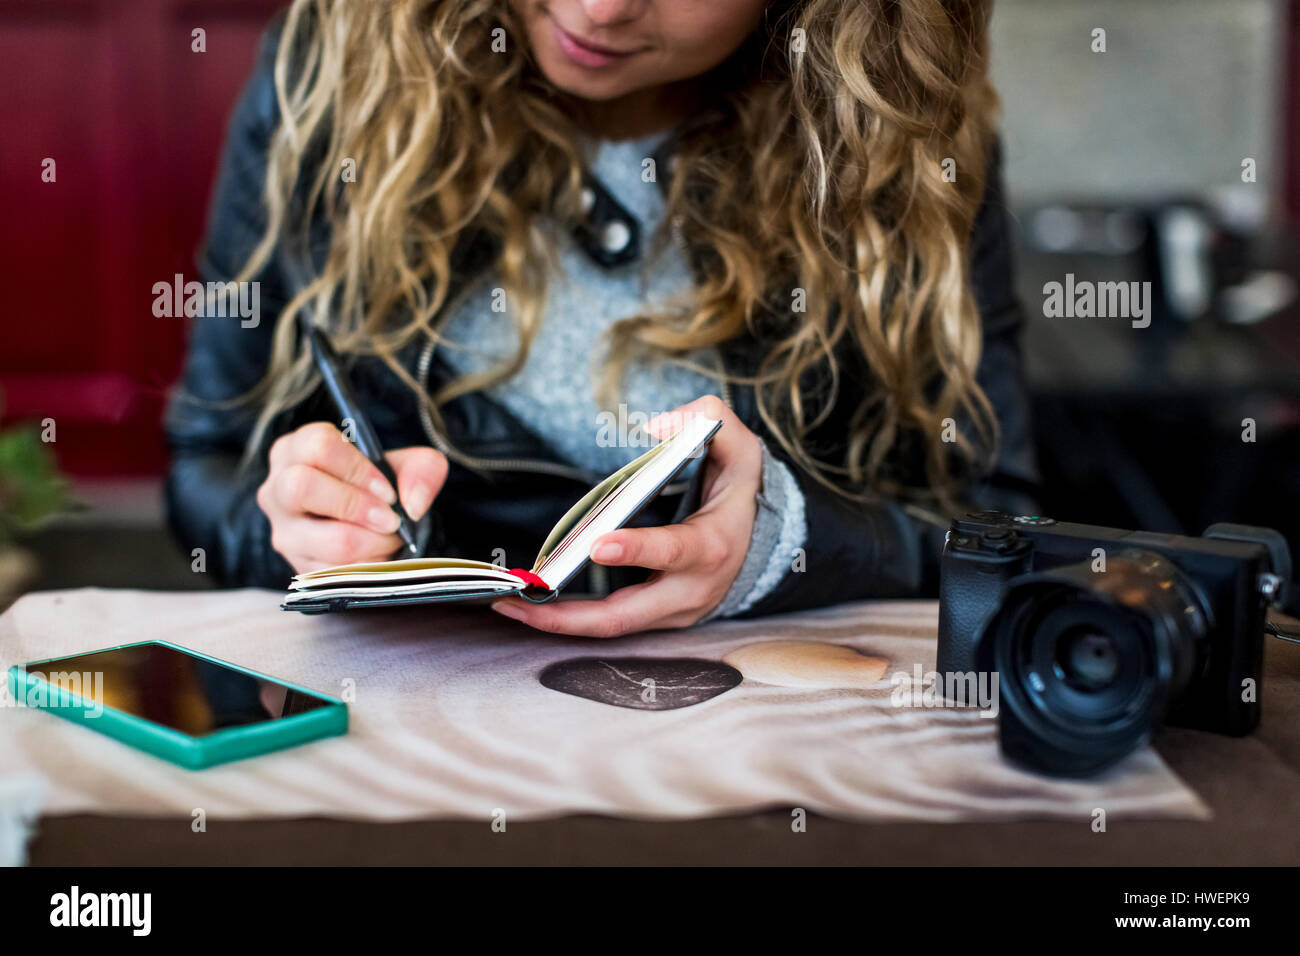 Woman at cafe writing in notebook Stock Photo